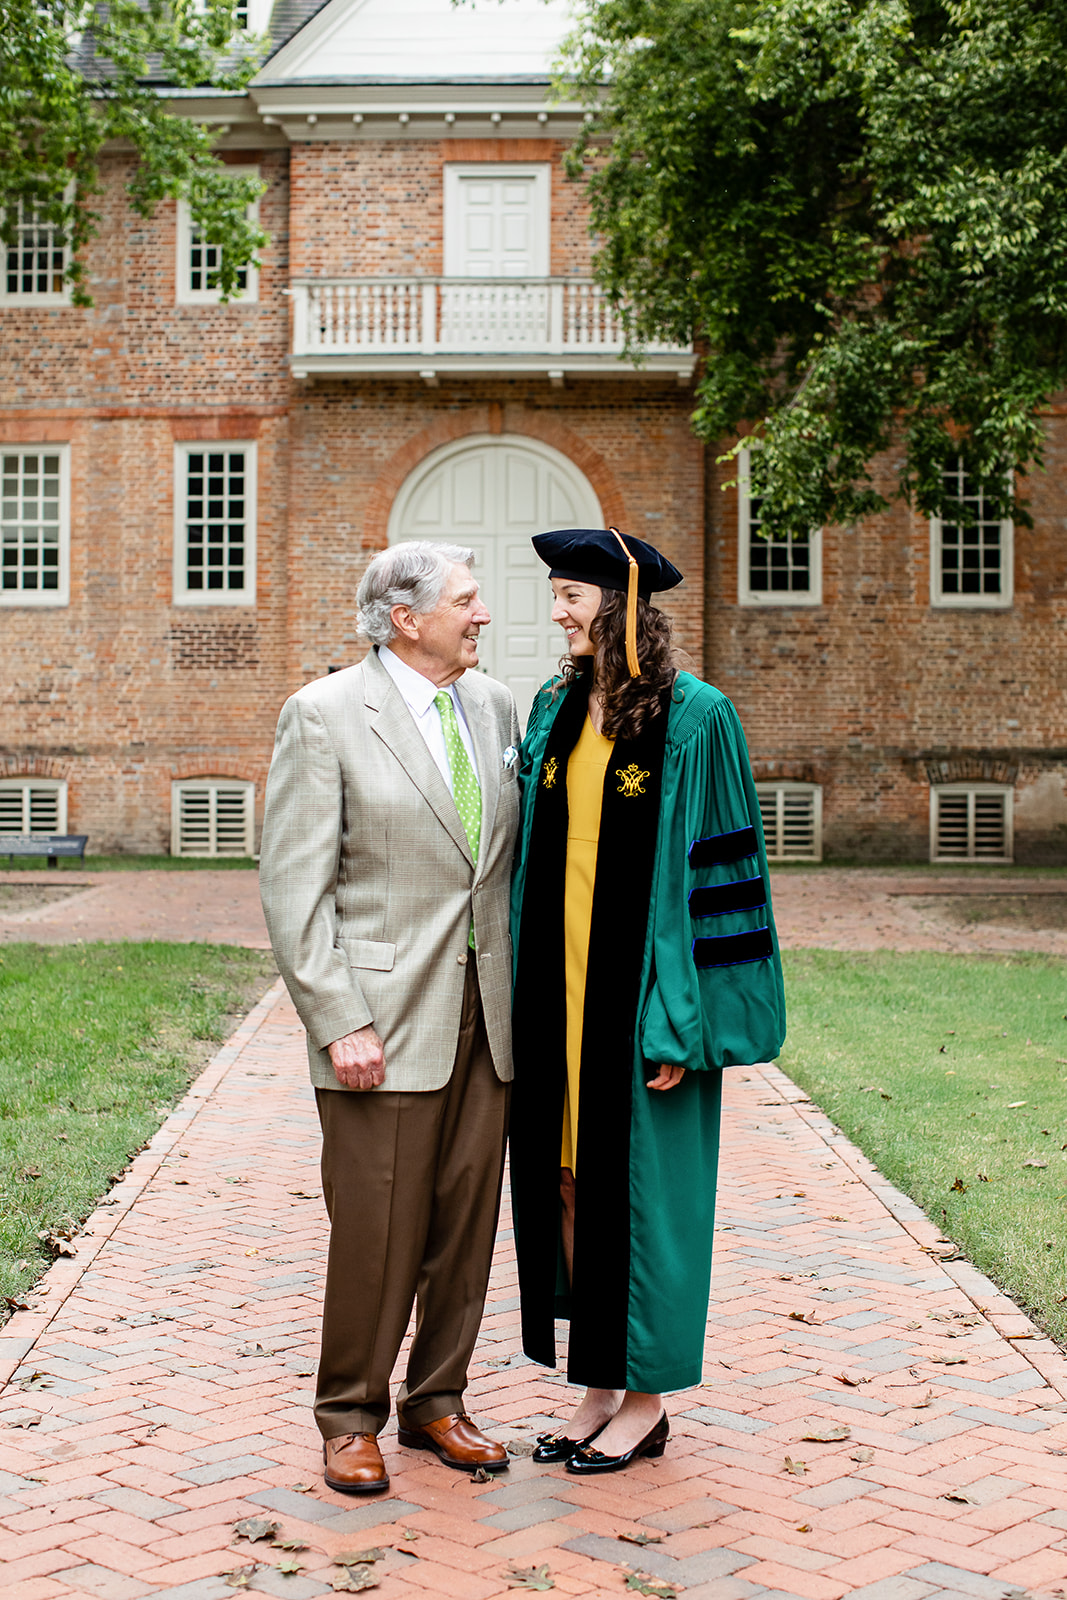 William  Mary Law School Graduation  Family Photos  - Image Property of www.j-dphoto.com